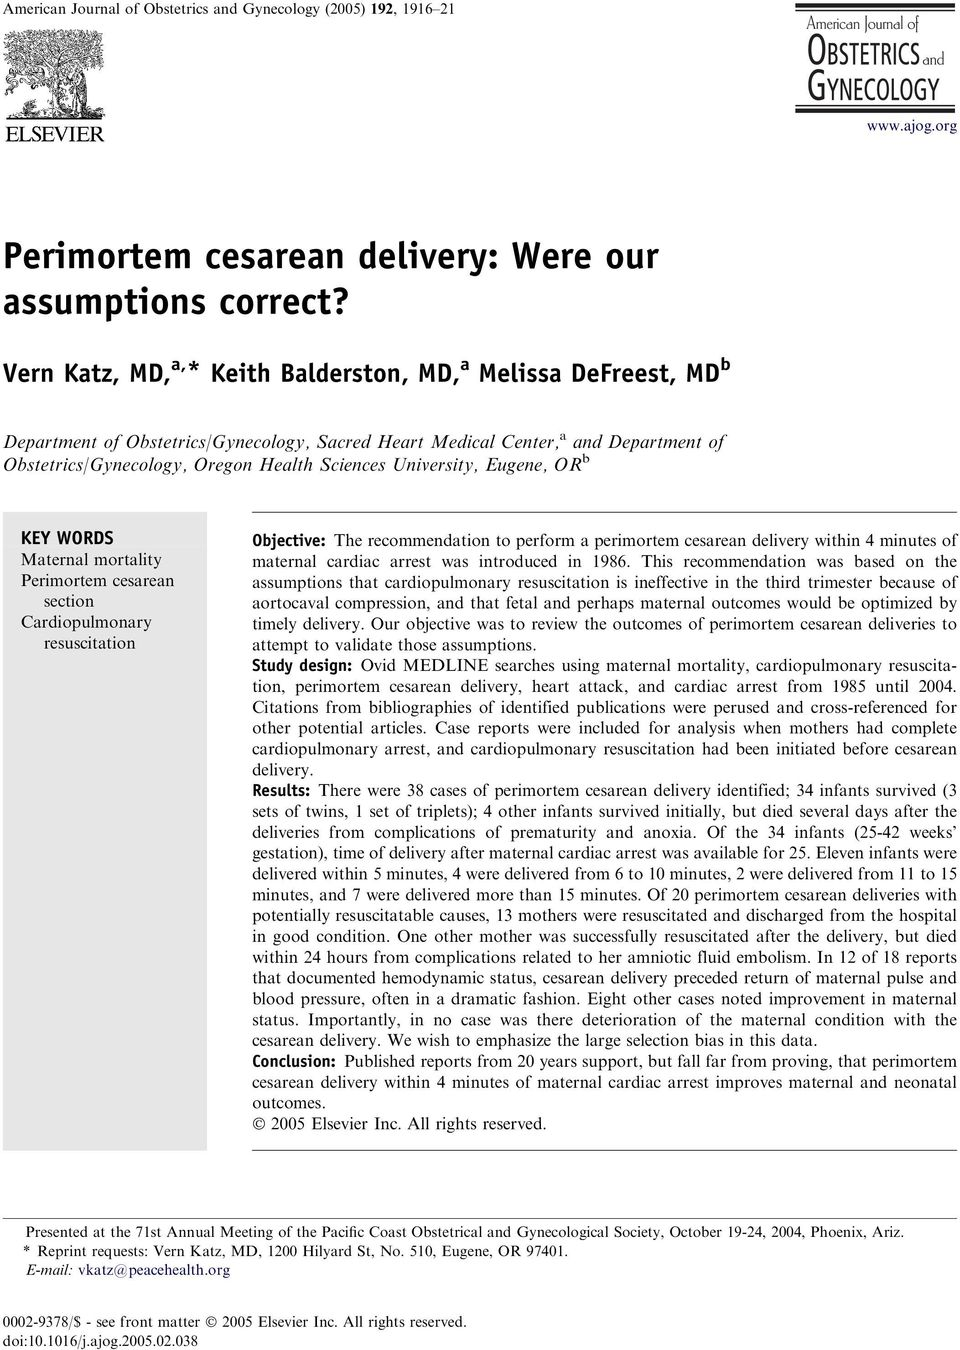 University, Eugene, OR b KEY WORDS Maternal mortality Perimortem cesarean section Cardiopulmonary resuscitation Objective: The recommendation to perform a perimortem cesarean delivery within 4